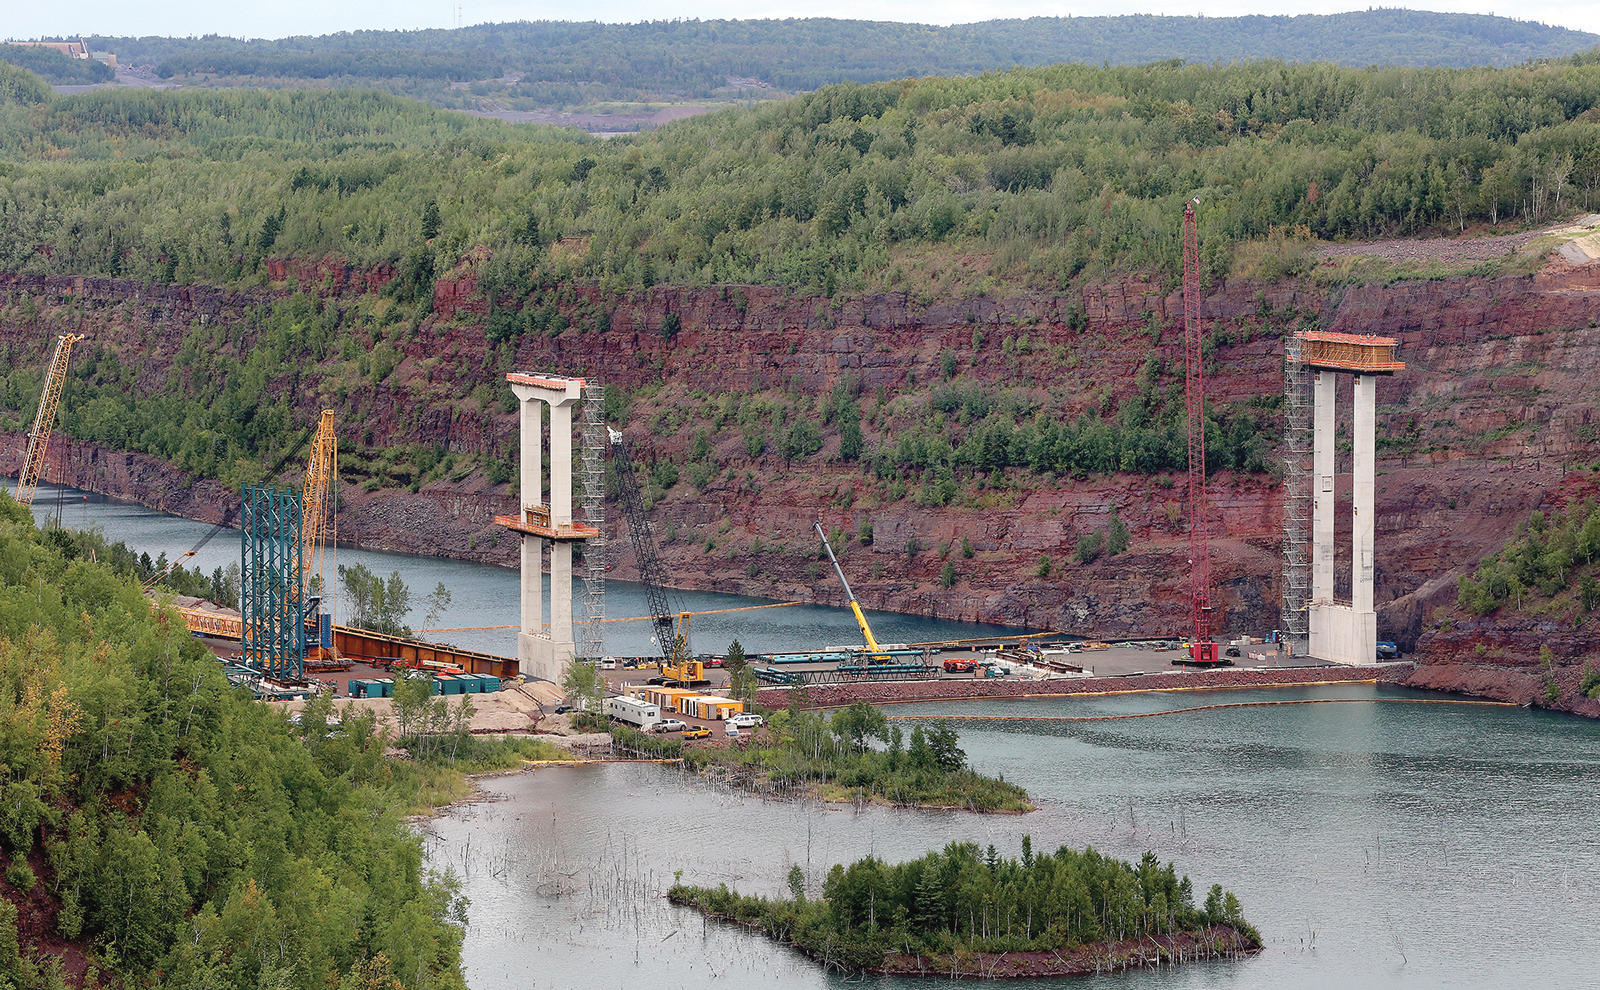 T08.24.2016 -- Steve Kuchera -- kucheraBRIDGE0827c3 -- The view from the location of the former Mineview in the Sky shows the concrete piers for the U.S. Highway 53 bridge being built across the Rouchleau pit rise above the pit's water. The temporary metal framework (left) will help support metal beams when they are lifted into place. Workers will build a second temporary metal framework to right. Steve Kuchera / skuchera@duluthnews.com